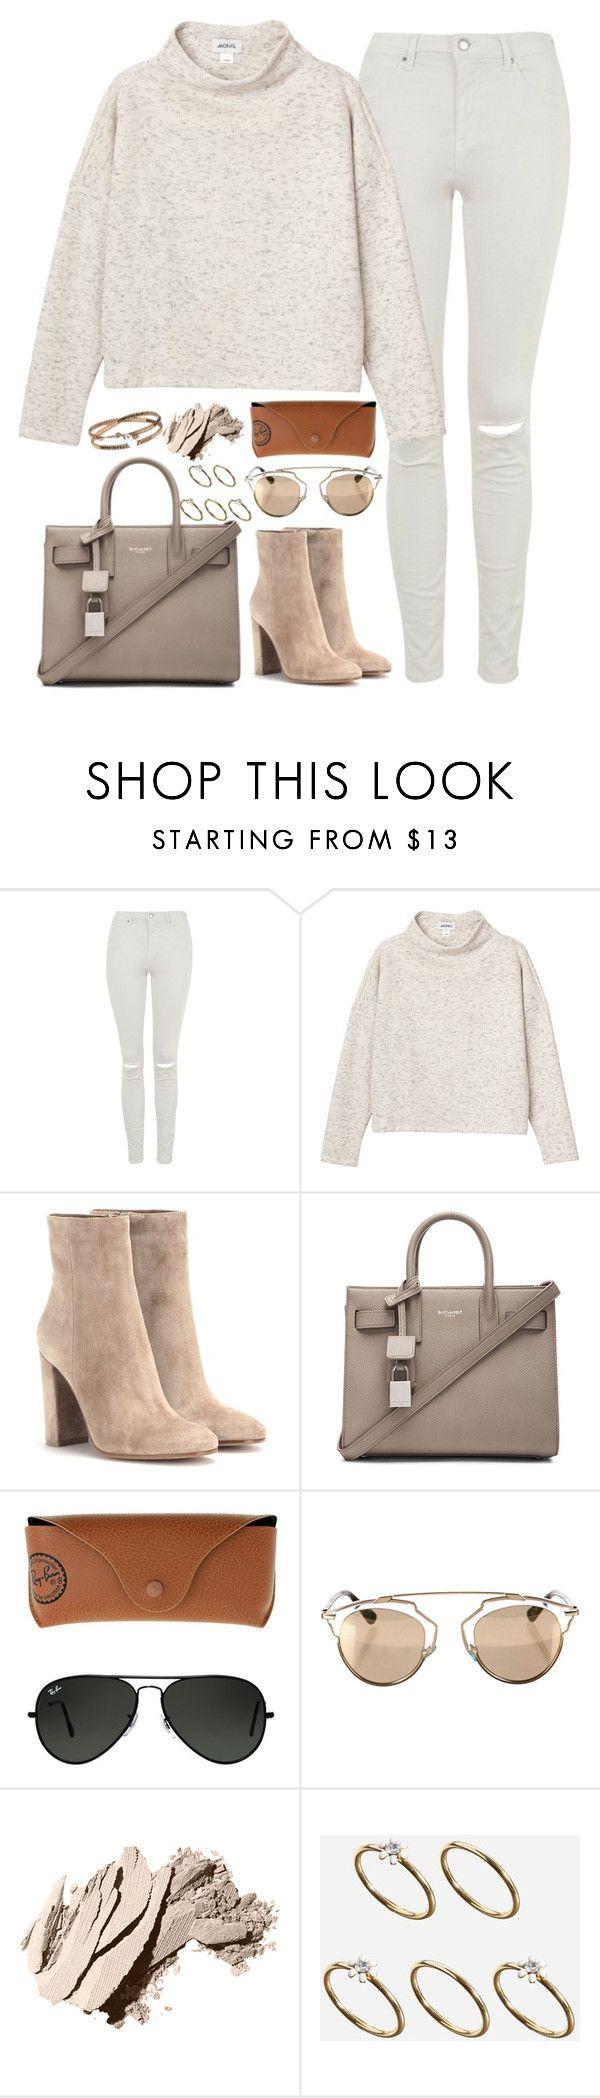 """""""Untitled#4408"""" by fashionnfacts ❤ liked on Polyvore featuring Topshop, Monki, Gianvito Rossi, Yves Saint Laurent, Ray-Ban, Christian Dior, Bobbi Brown Cosmetics and ASOS"""